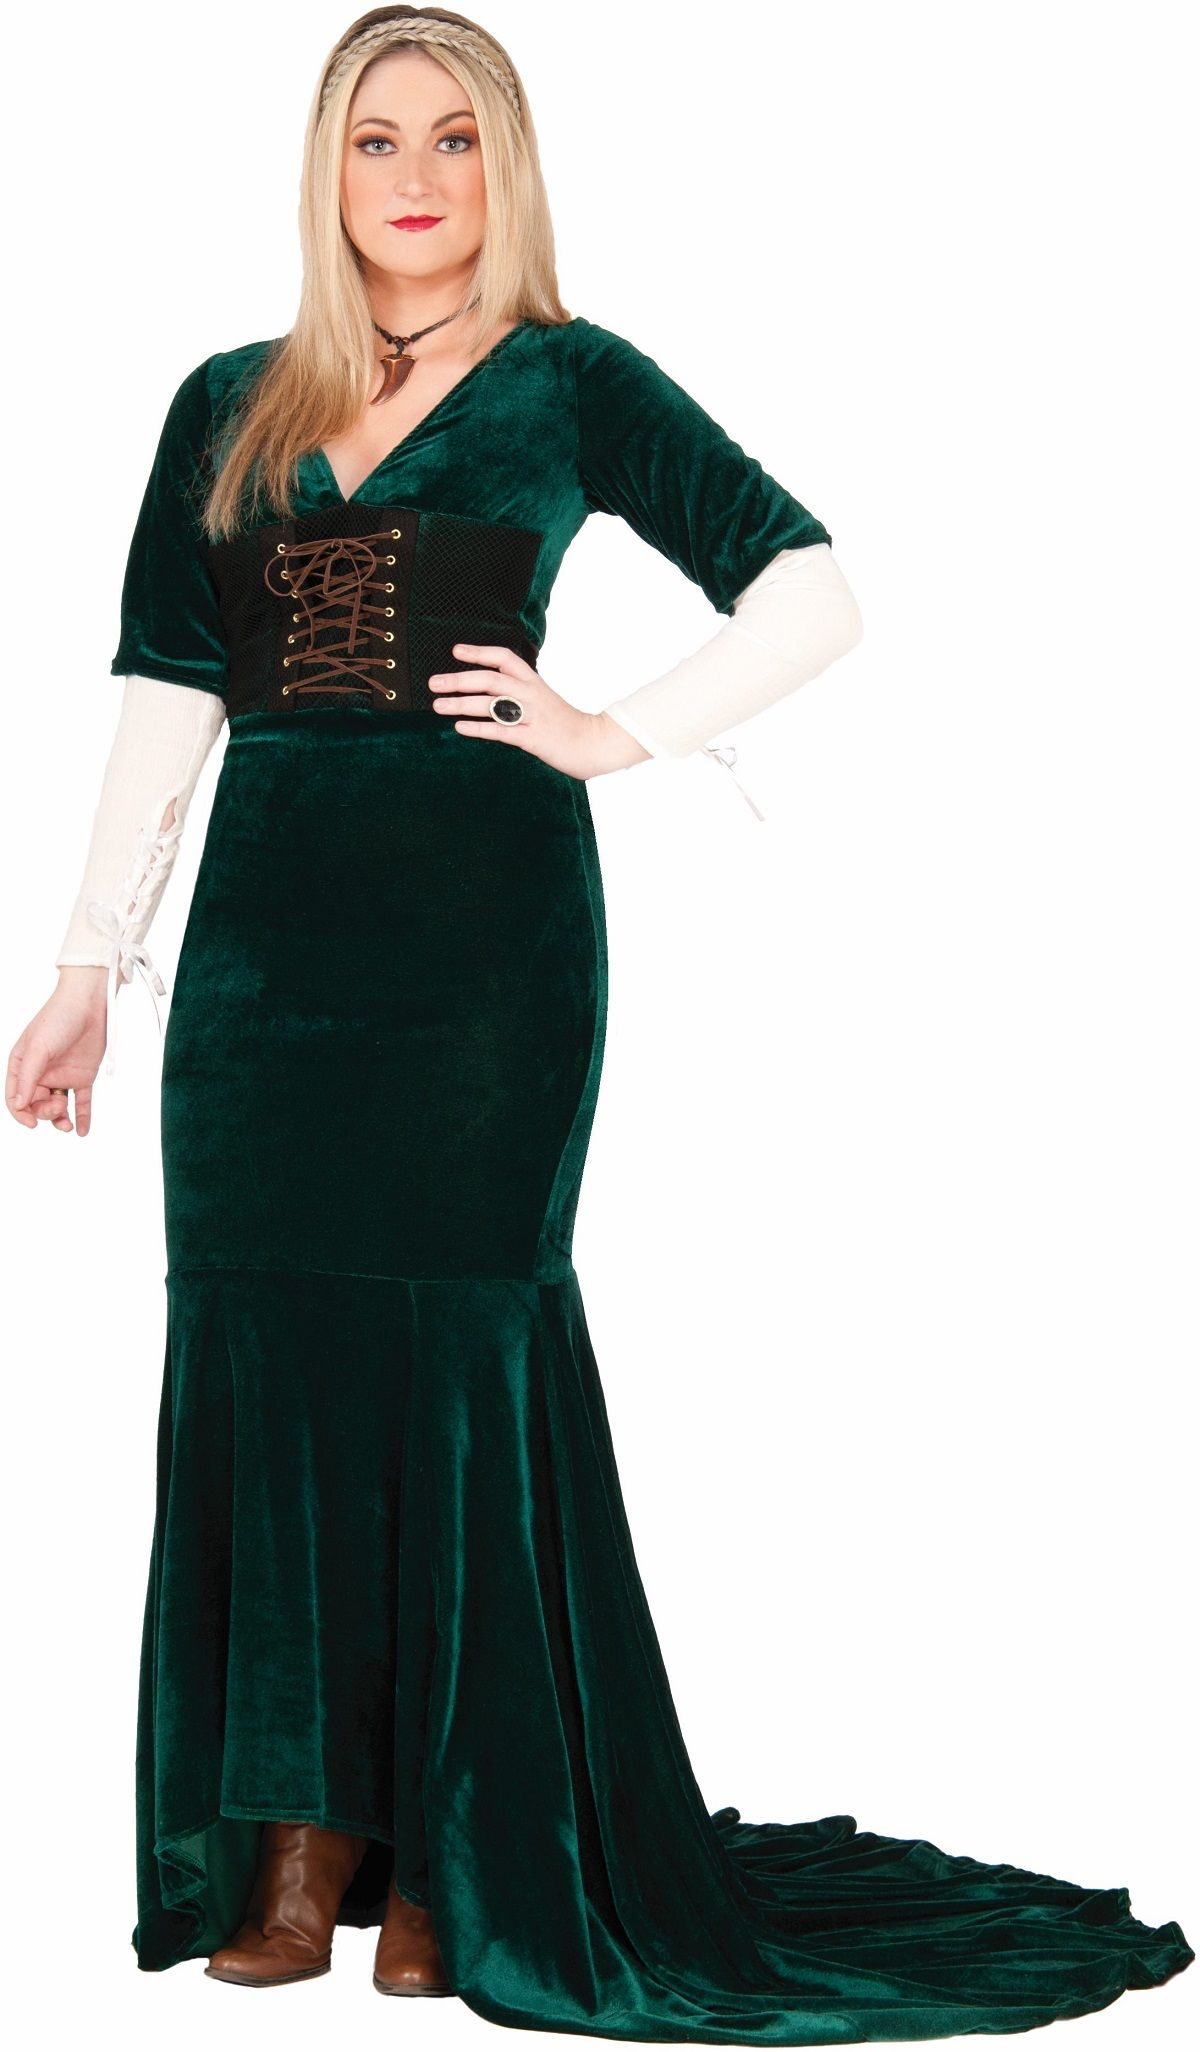 Plus Size Revealing Renaissance Women Medieval Queen Costume FN73622 Halloween Costumes Plus Size Revealing Renaissance Women Medieval Queen Costume ...  sc 1 st  Pinterest : medieval queen costume plus size  - Germanpascual.Com